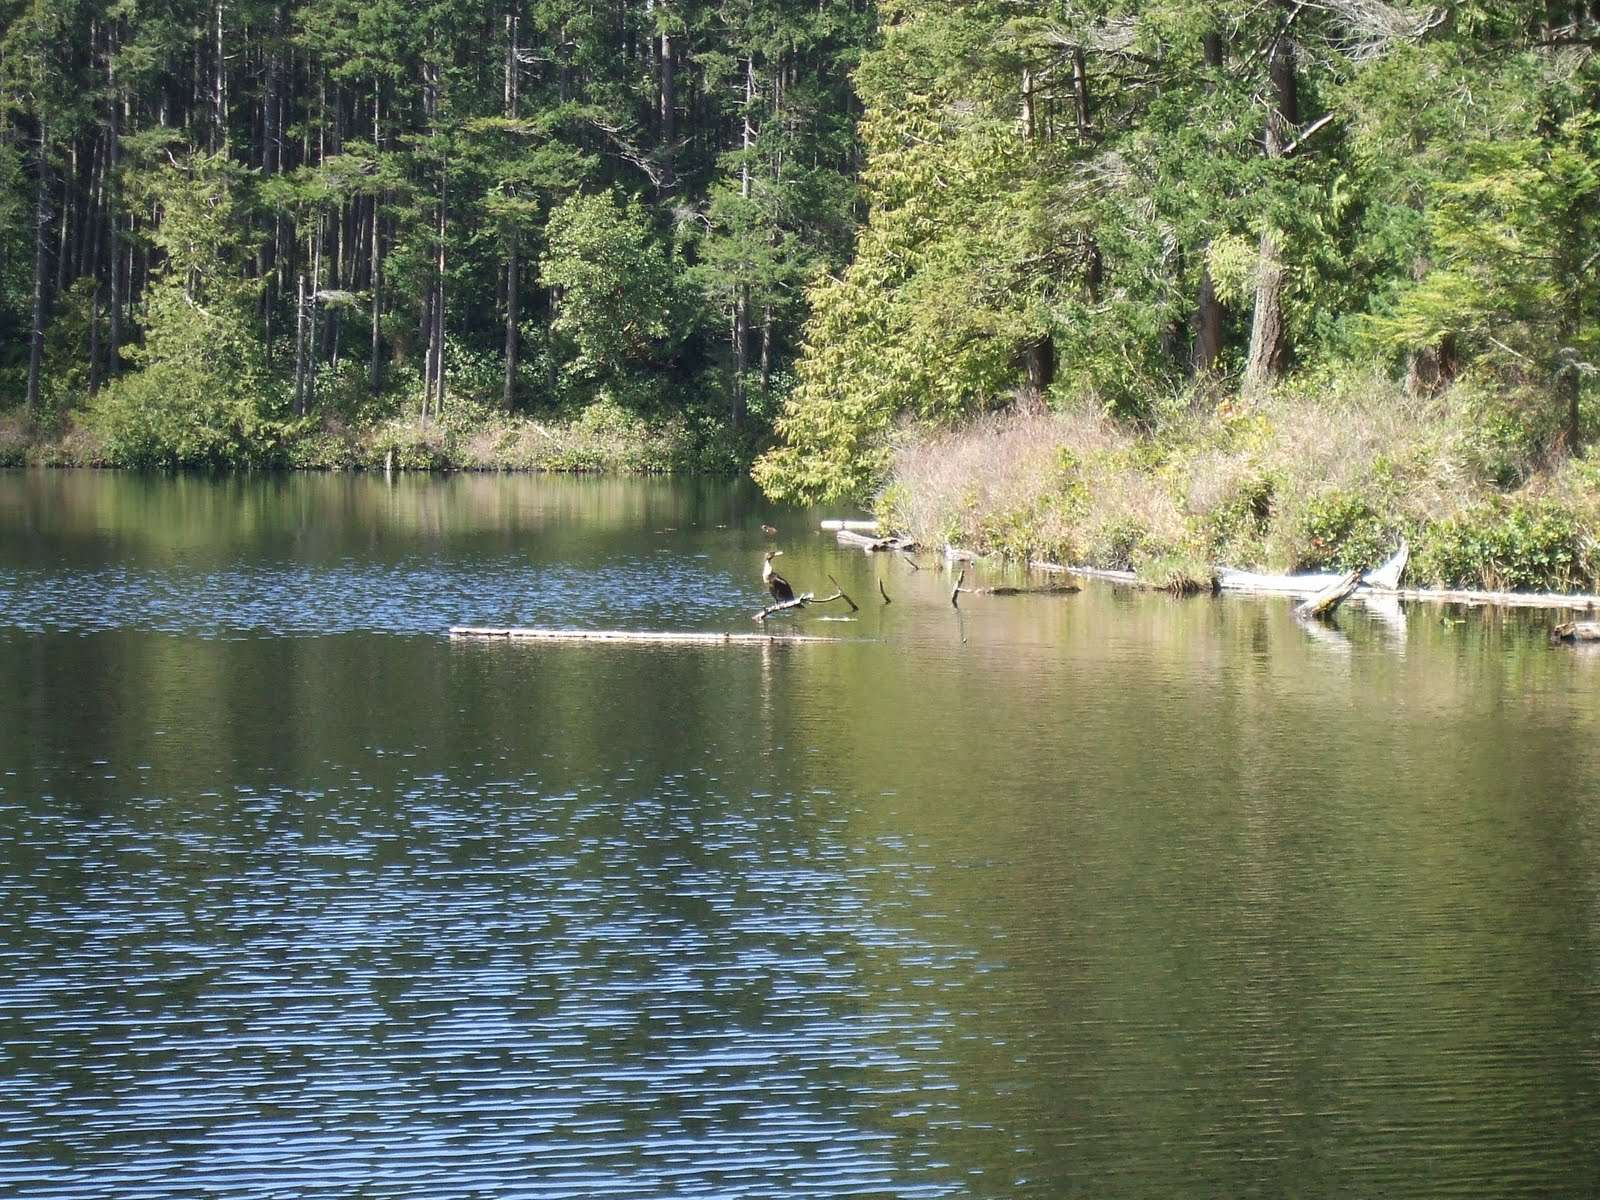 cranberry lake single parents Hiking cranberry lake campground offers a great base for hiking the numerous trails in the area two foot trails leave the campground the 24 mile bear mountain trail is a loop trail which offers a challenging climb and scenic vistas to the novice hiker.